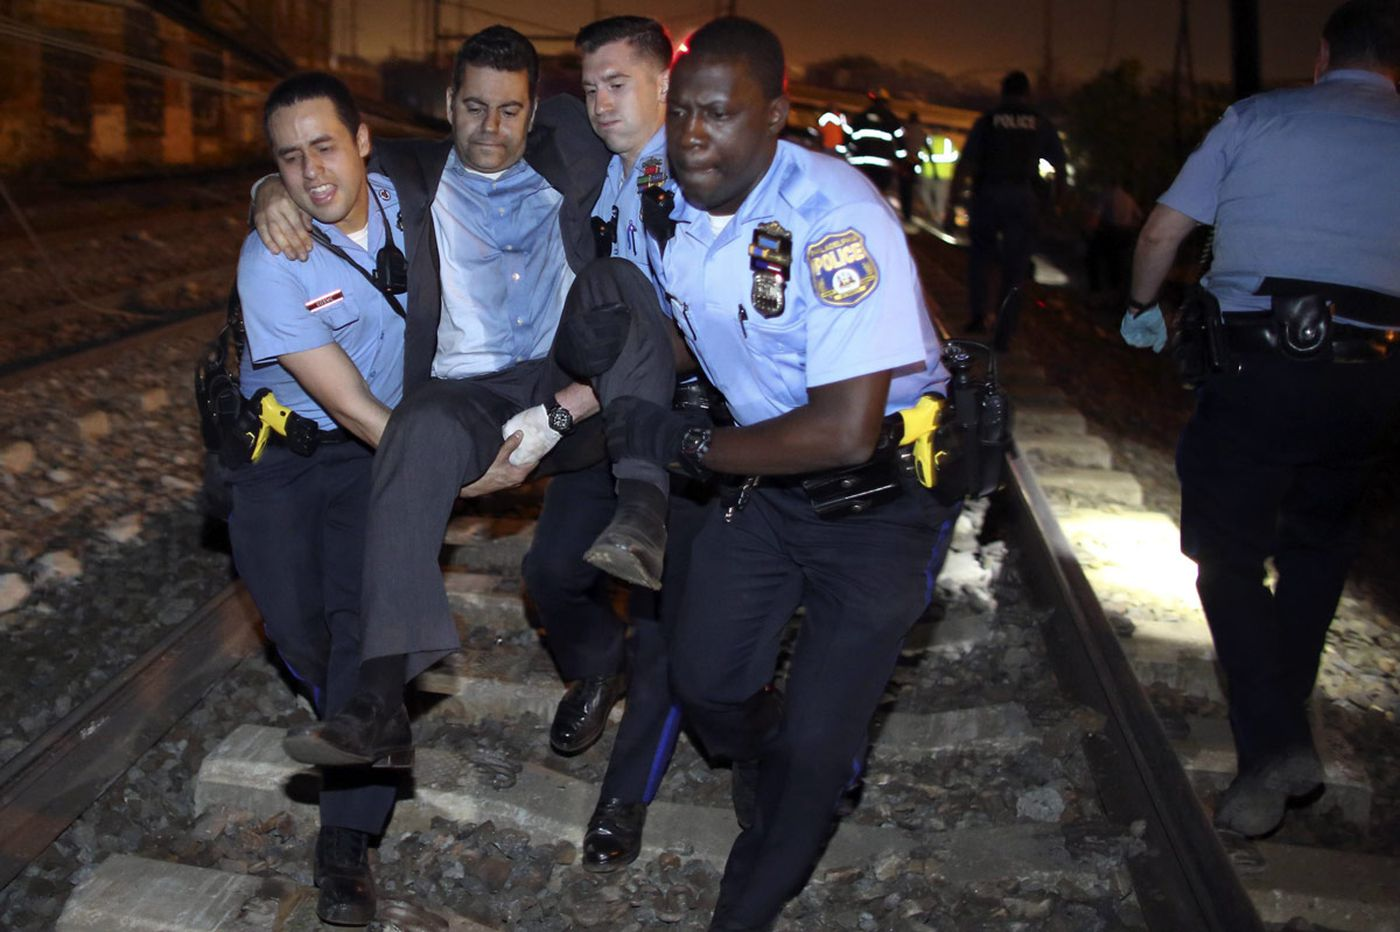 After Amtrak chaos, new limits coming on police 'scoop and run'